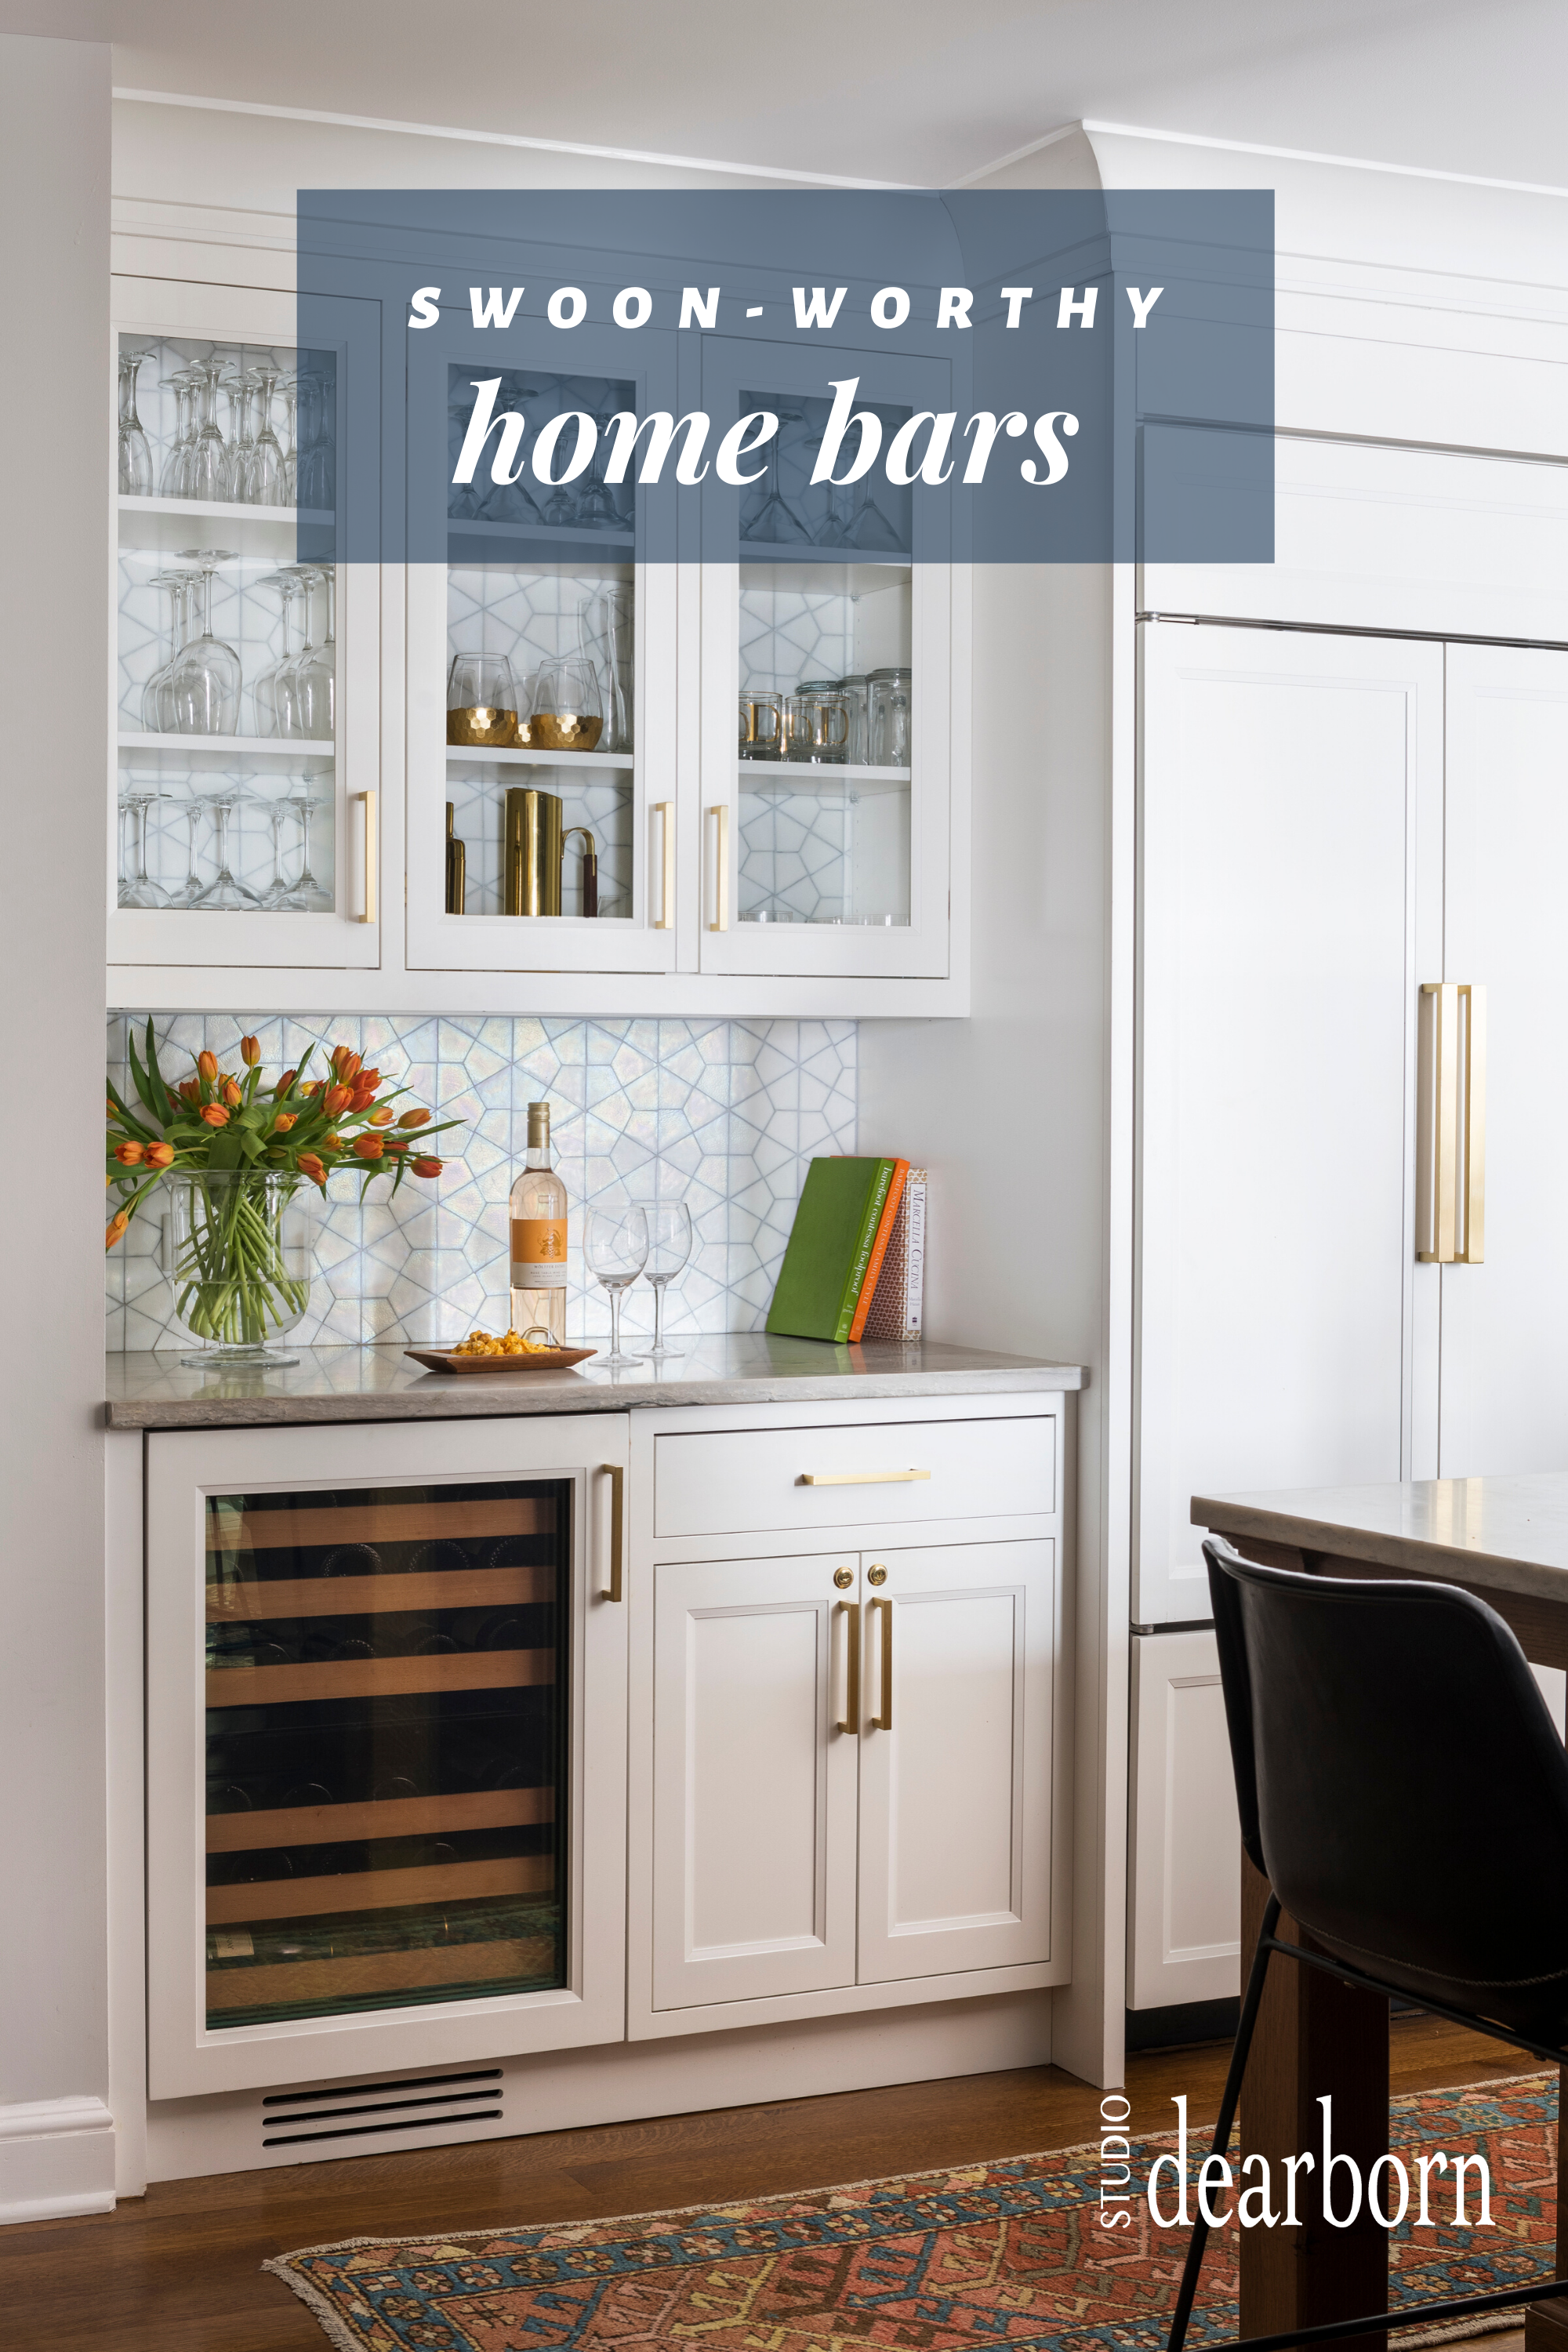 An Inspired Roundup Of Kitchen Wet Bar Home Bars To Enjoy During Shelter In Place Or Cocktail Hour Bars For Home Home Wet Bar Kitchen Wet Bar